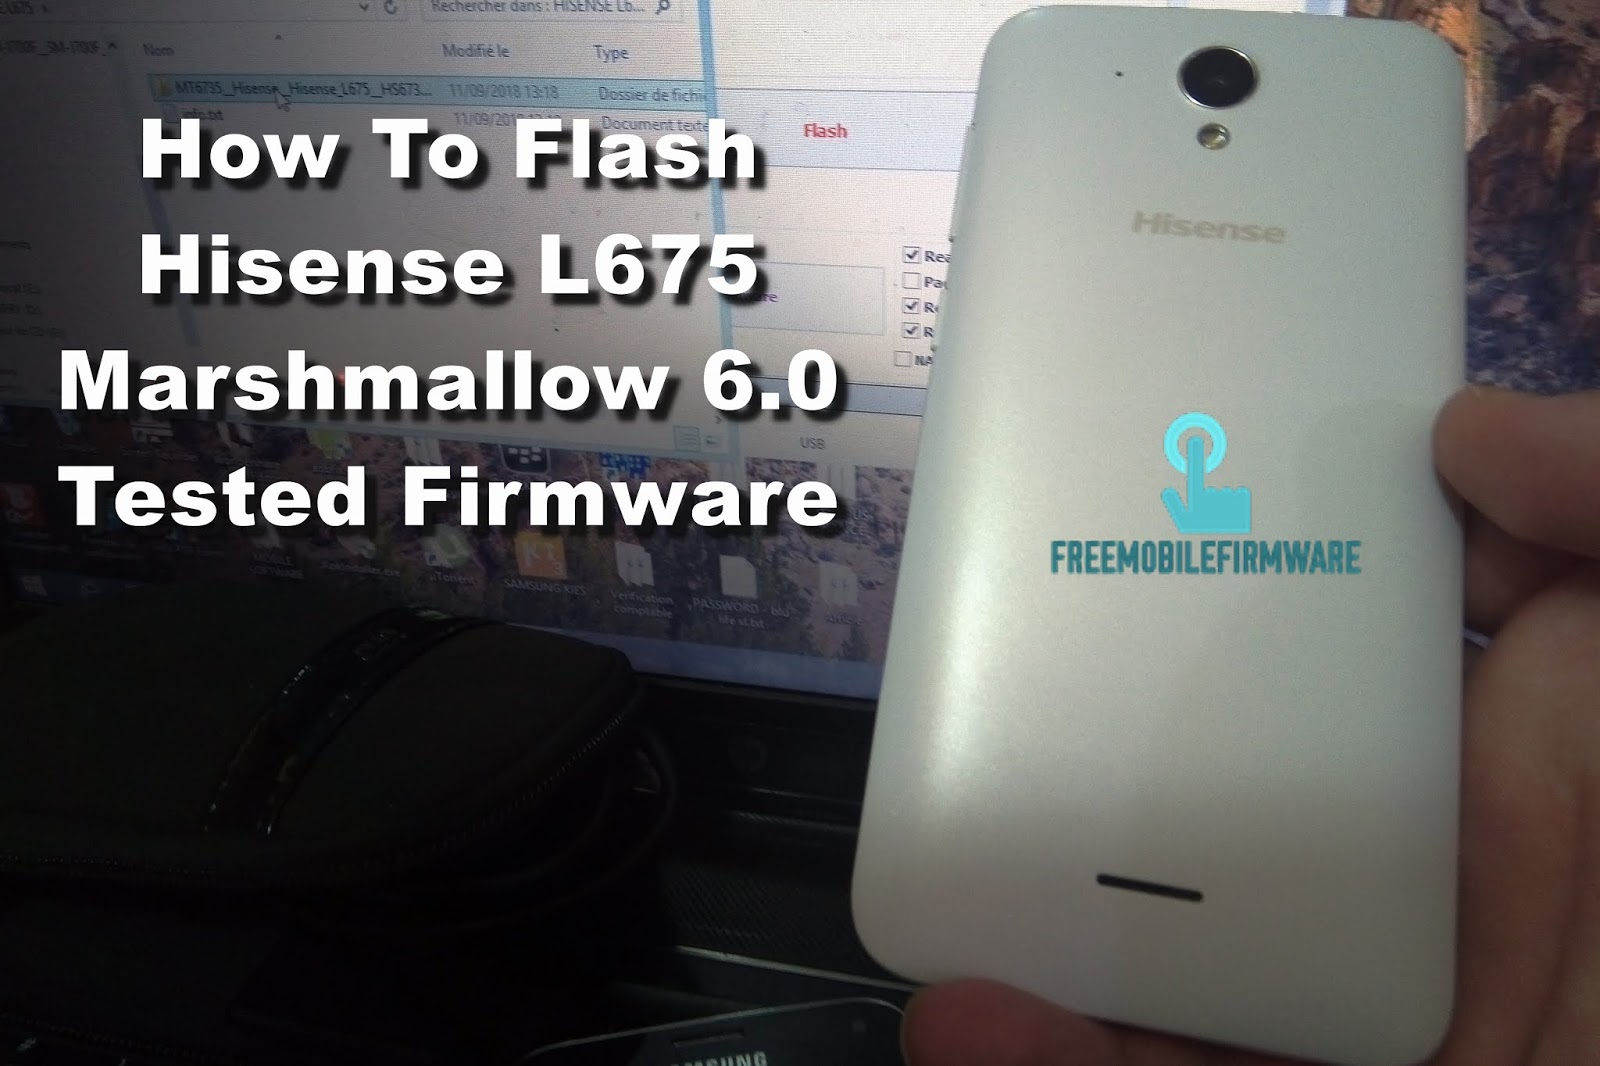 How To Flash Hisense L675 Marshmallow 6 0 Tested Firmware